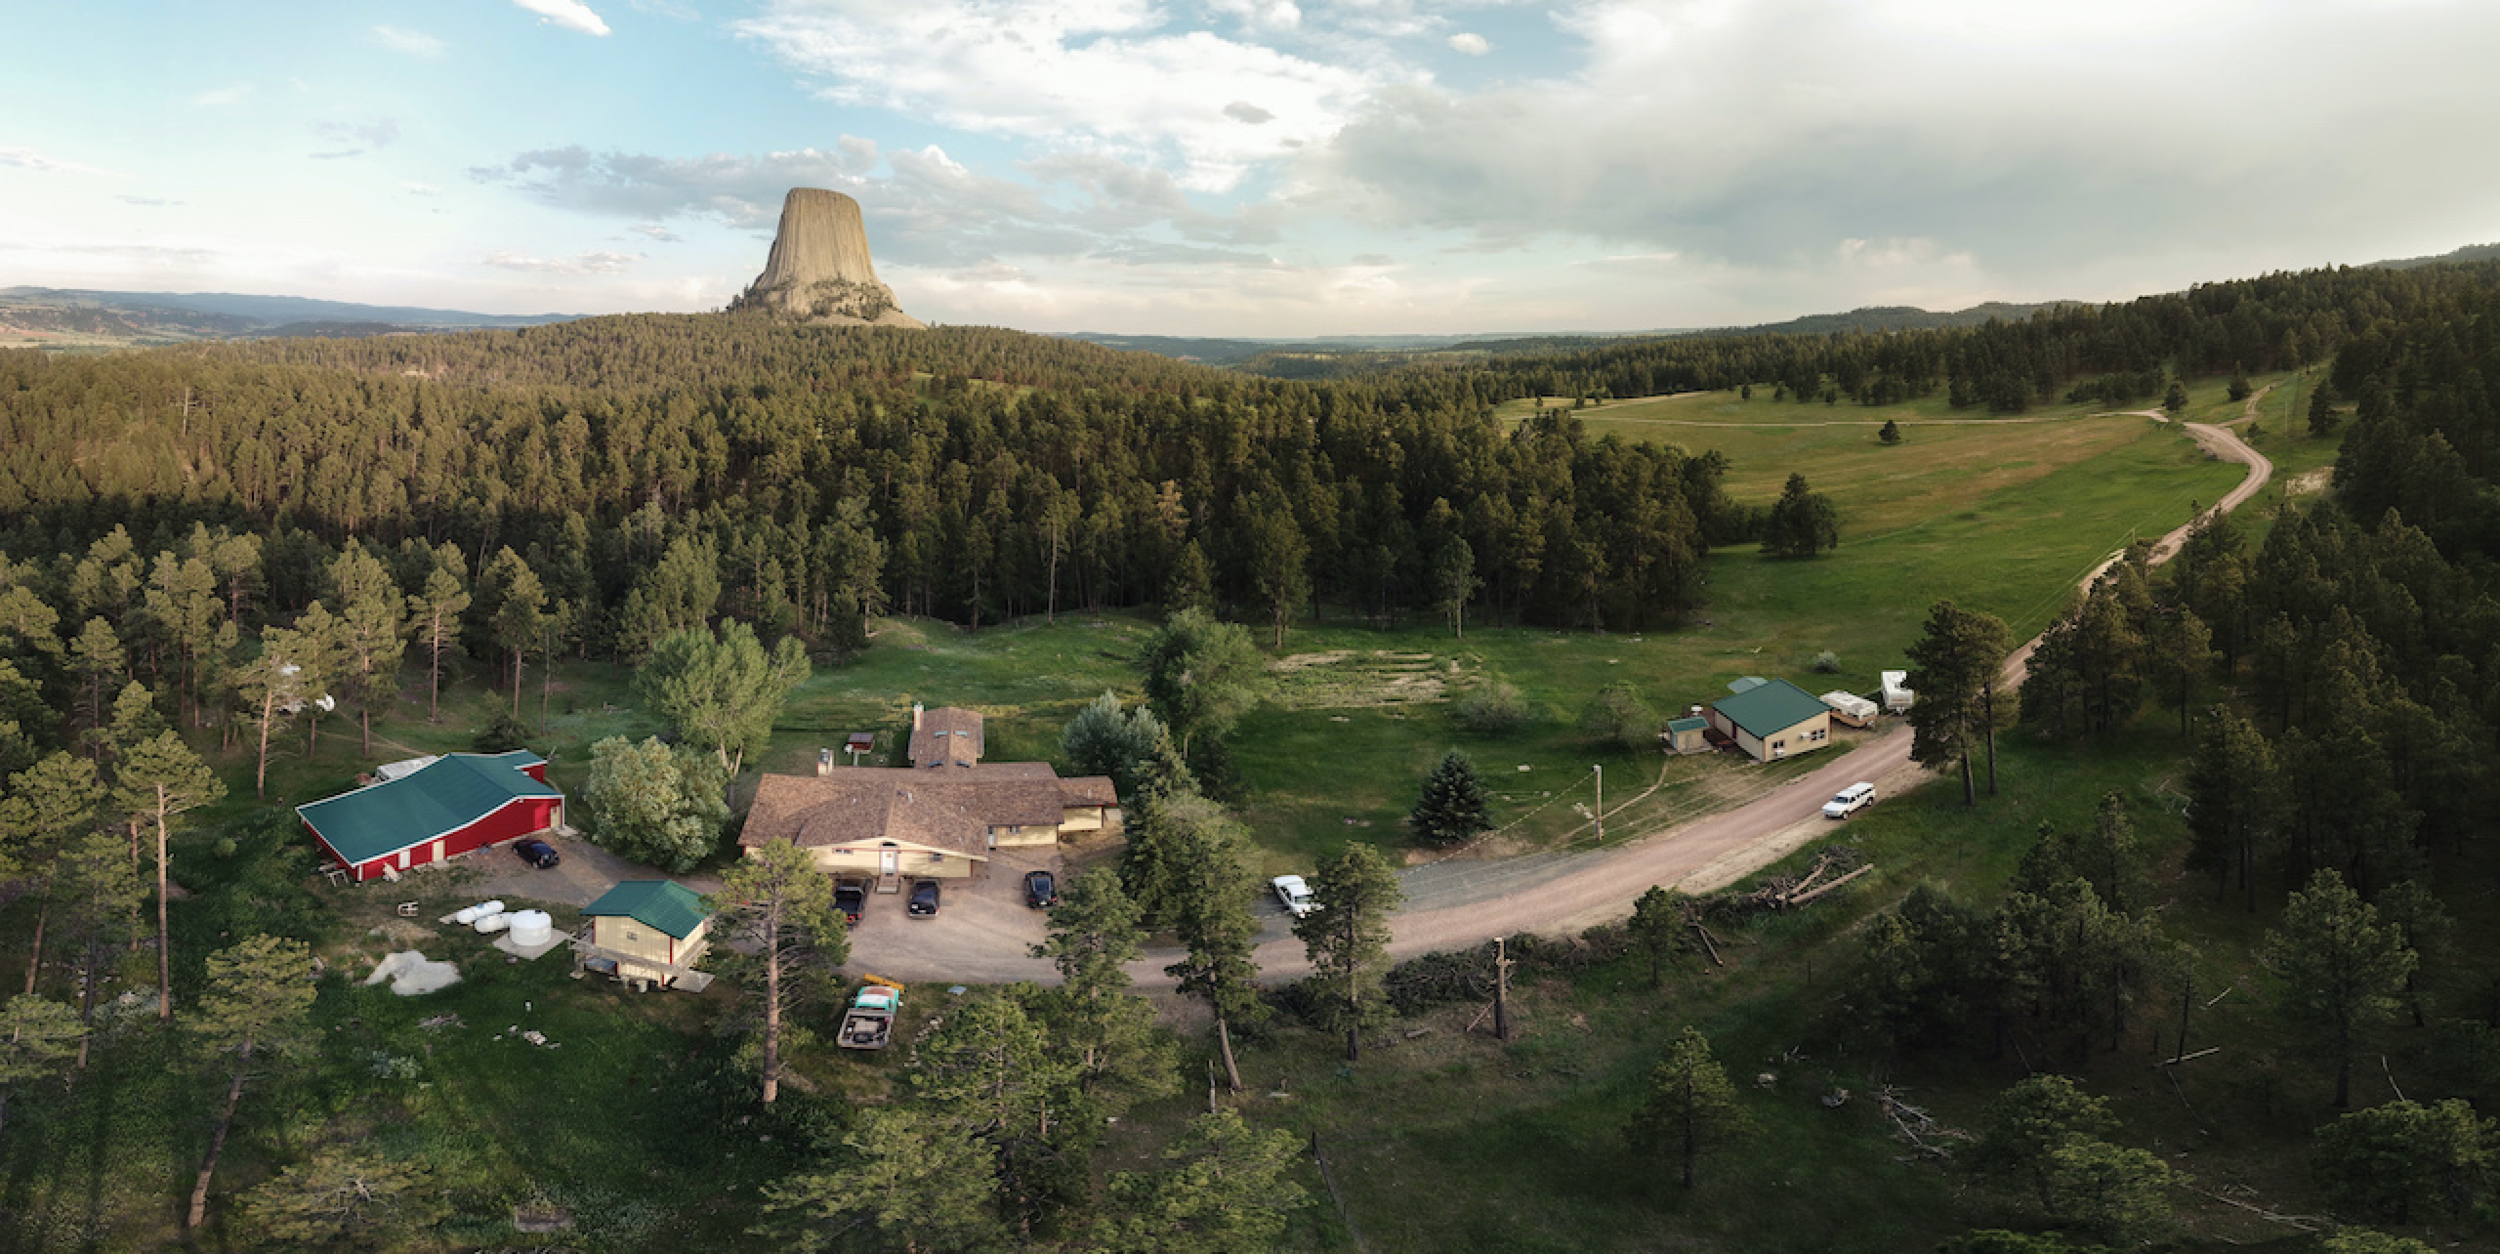 Sandwiched between Devils Tower National Monument and 50,000 acres of ranch land, Devils Tower Lodge radiates eccentricity powered by the climbing legend Frank Sanders.